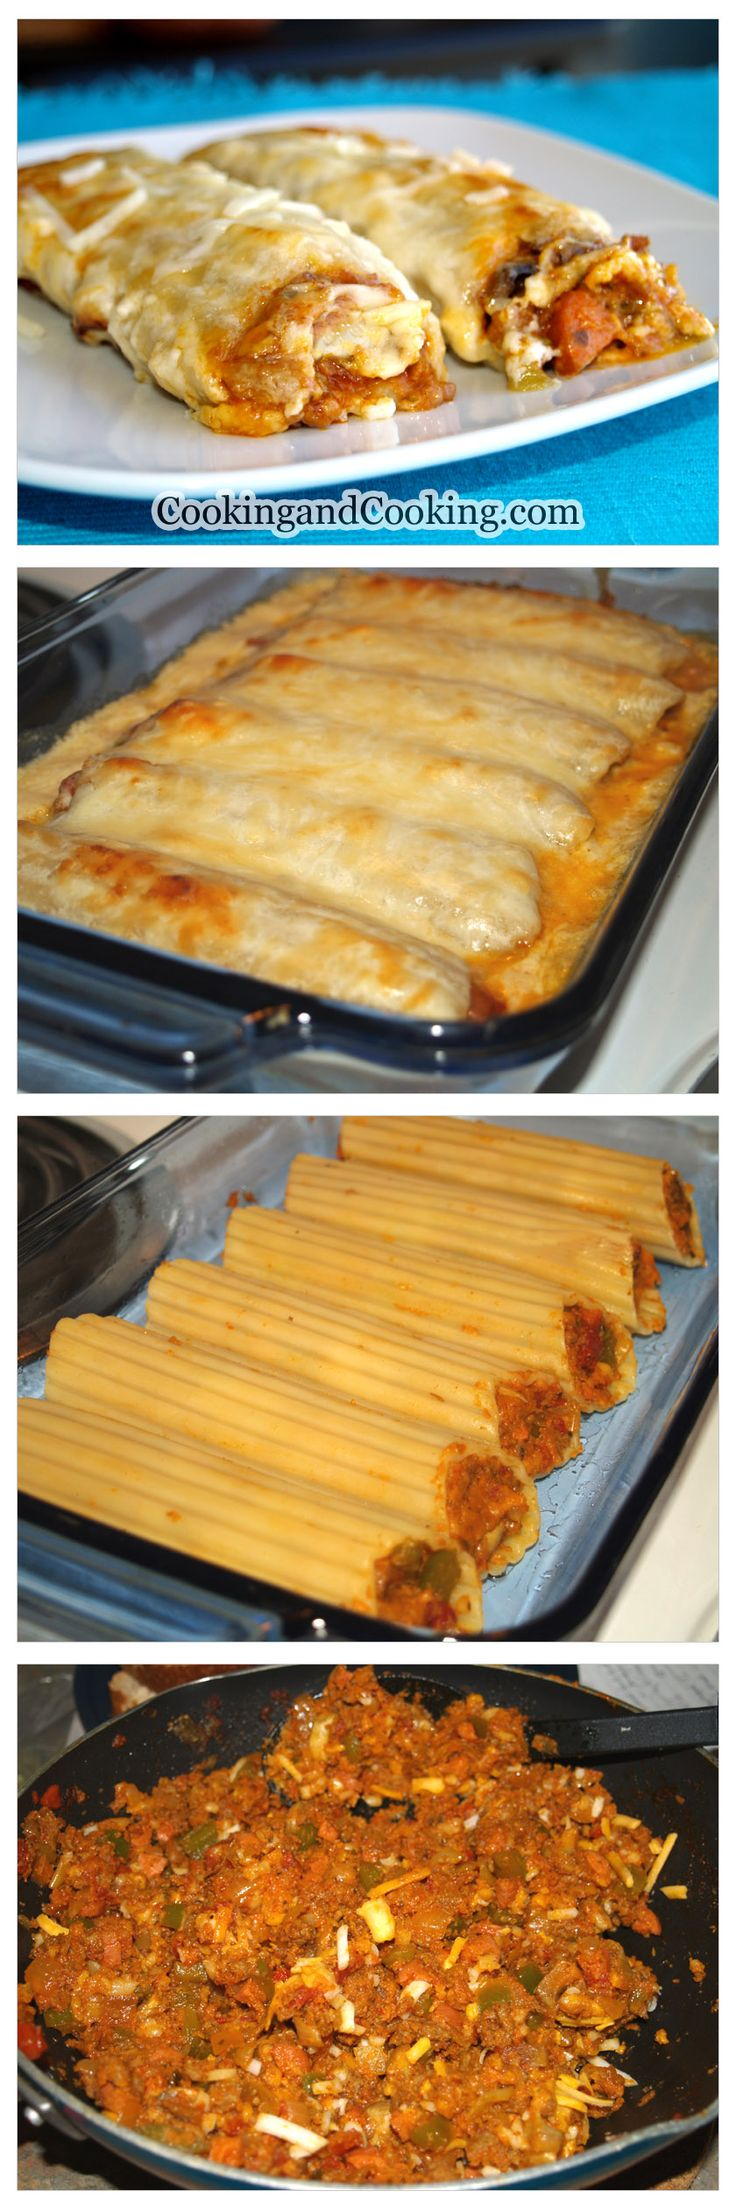 Beef Manicotti Recipe _ If you are looking for a delicious stuffed pasta dish, make Beef Manicotti & enjoy. It is a tasty & easy main dish recipe idea. You can use cannelloni instead of manicotti.